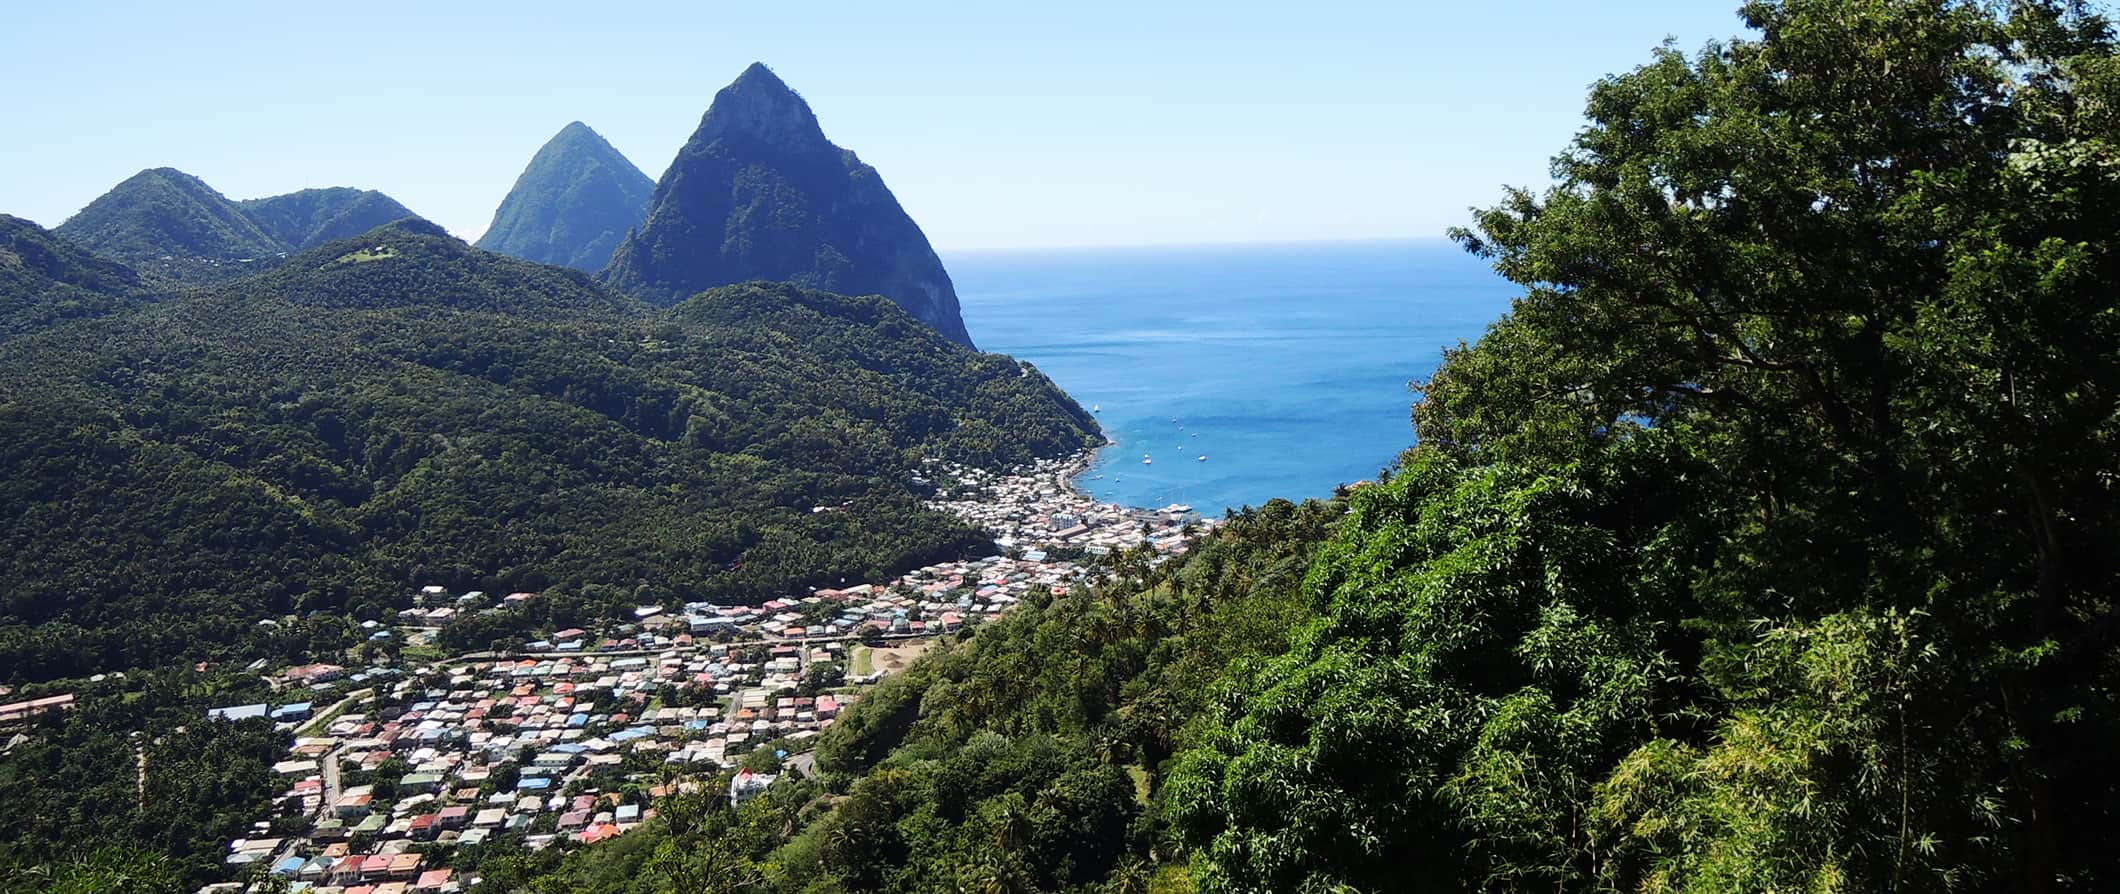 the Teton mountains around Saint Lucia